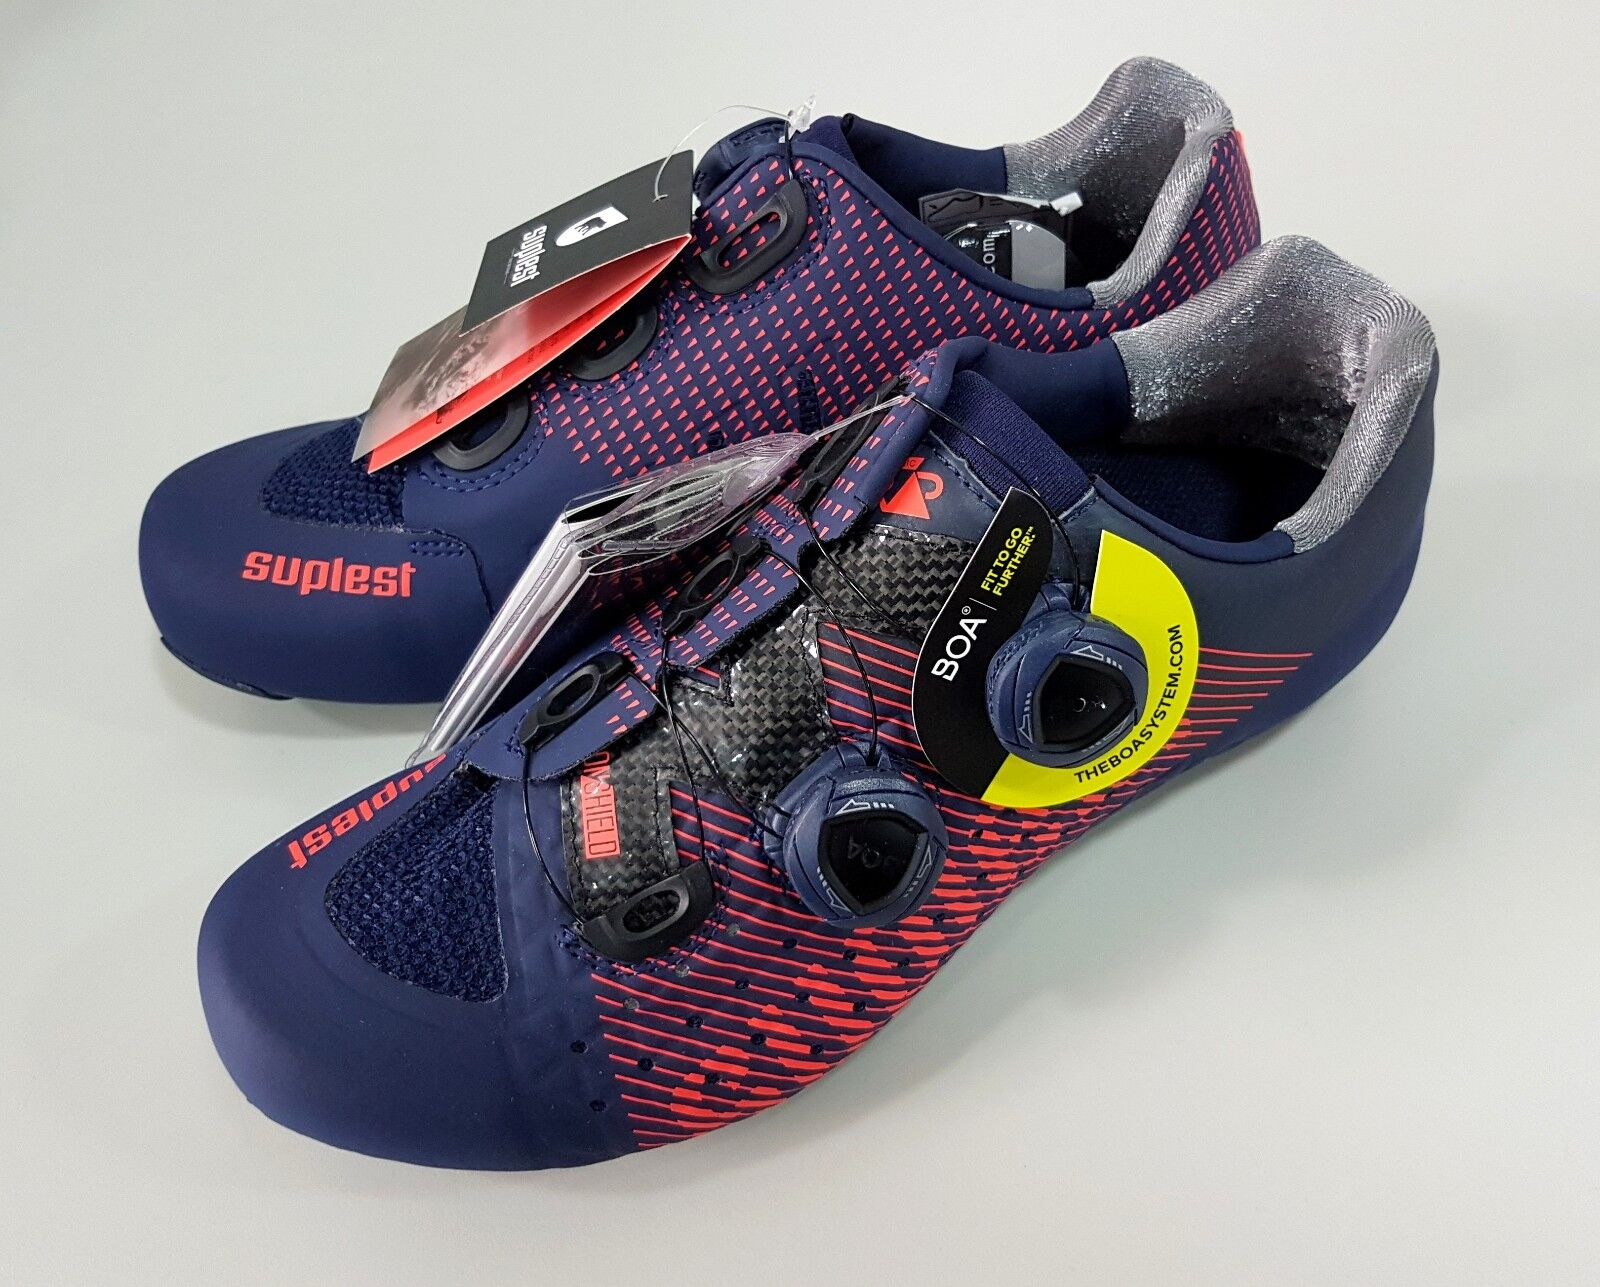 Suplest Edge 3 Pro Road Carbon  Bicycle Cycling shoes Size 40 Navy Coral  convenient